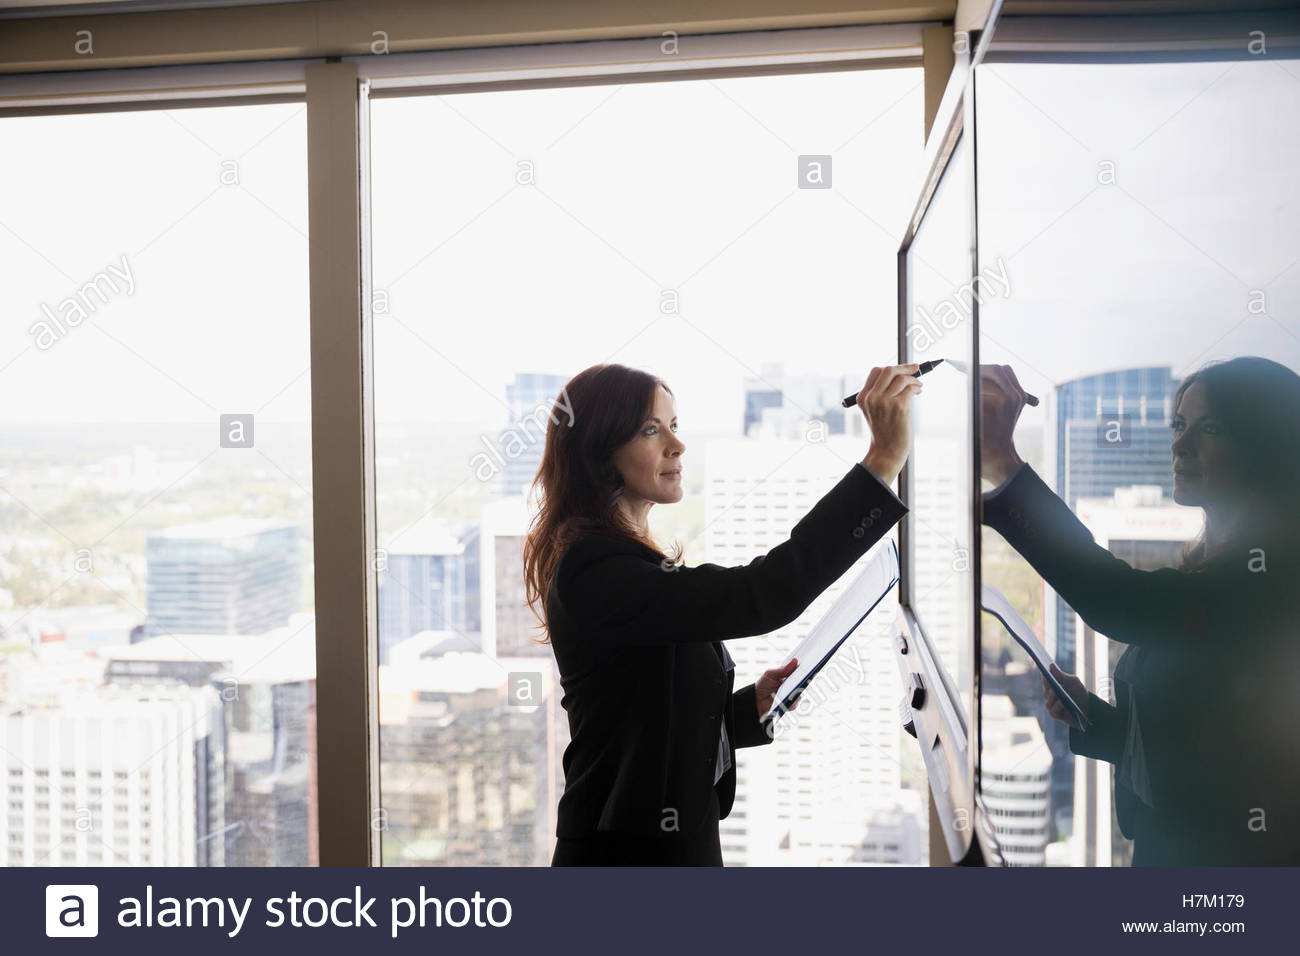 Businesswoman using stylus at large monitor in urban conference room - Stock Image